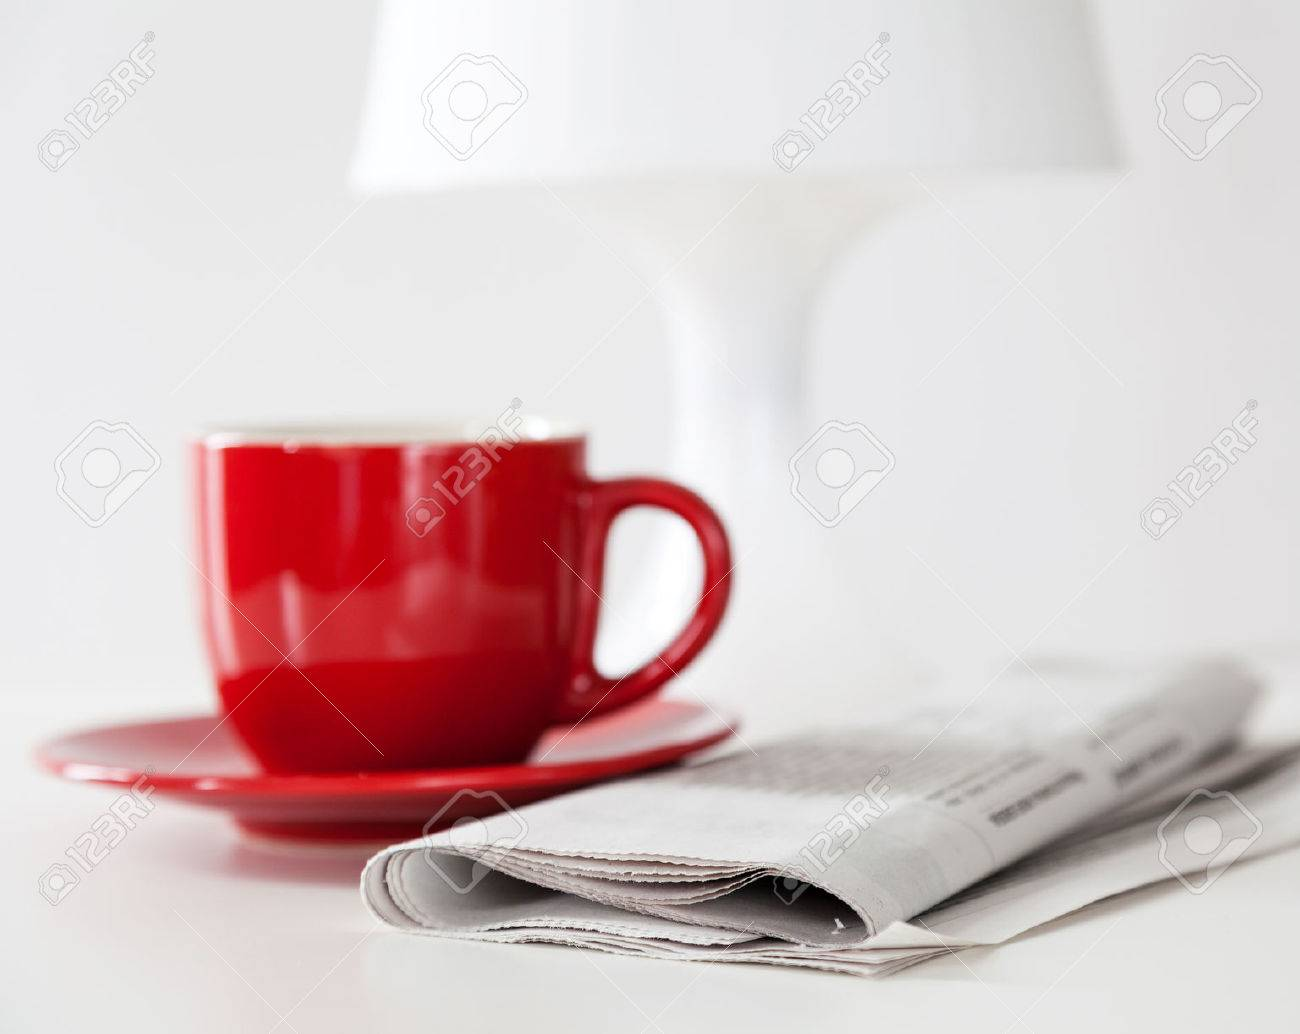 Newspaper and a coffee cup on a white table Stock Photo - 23824858